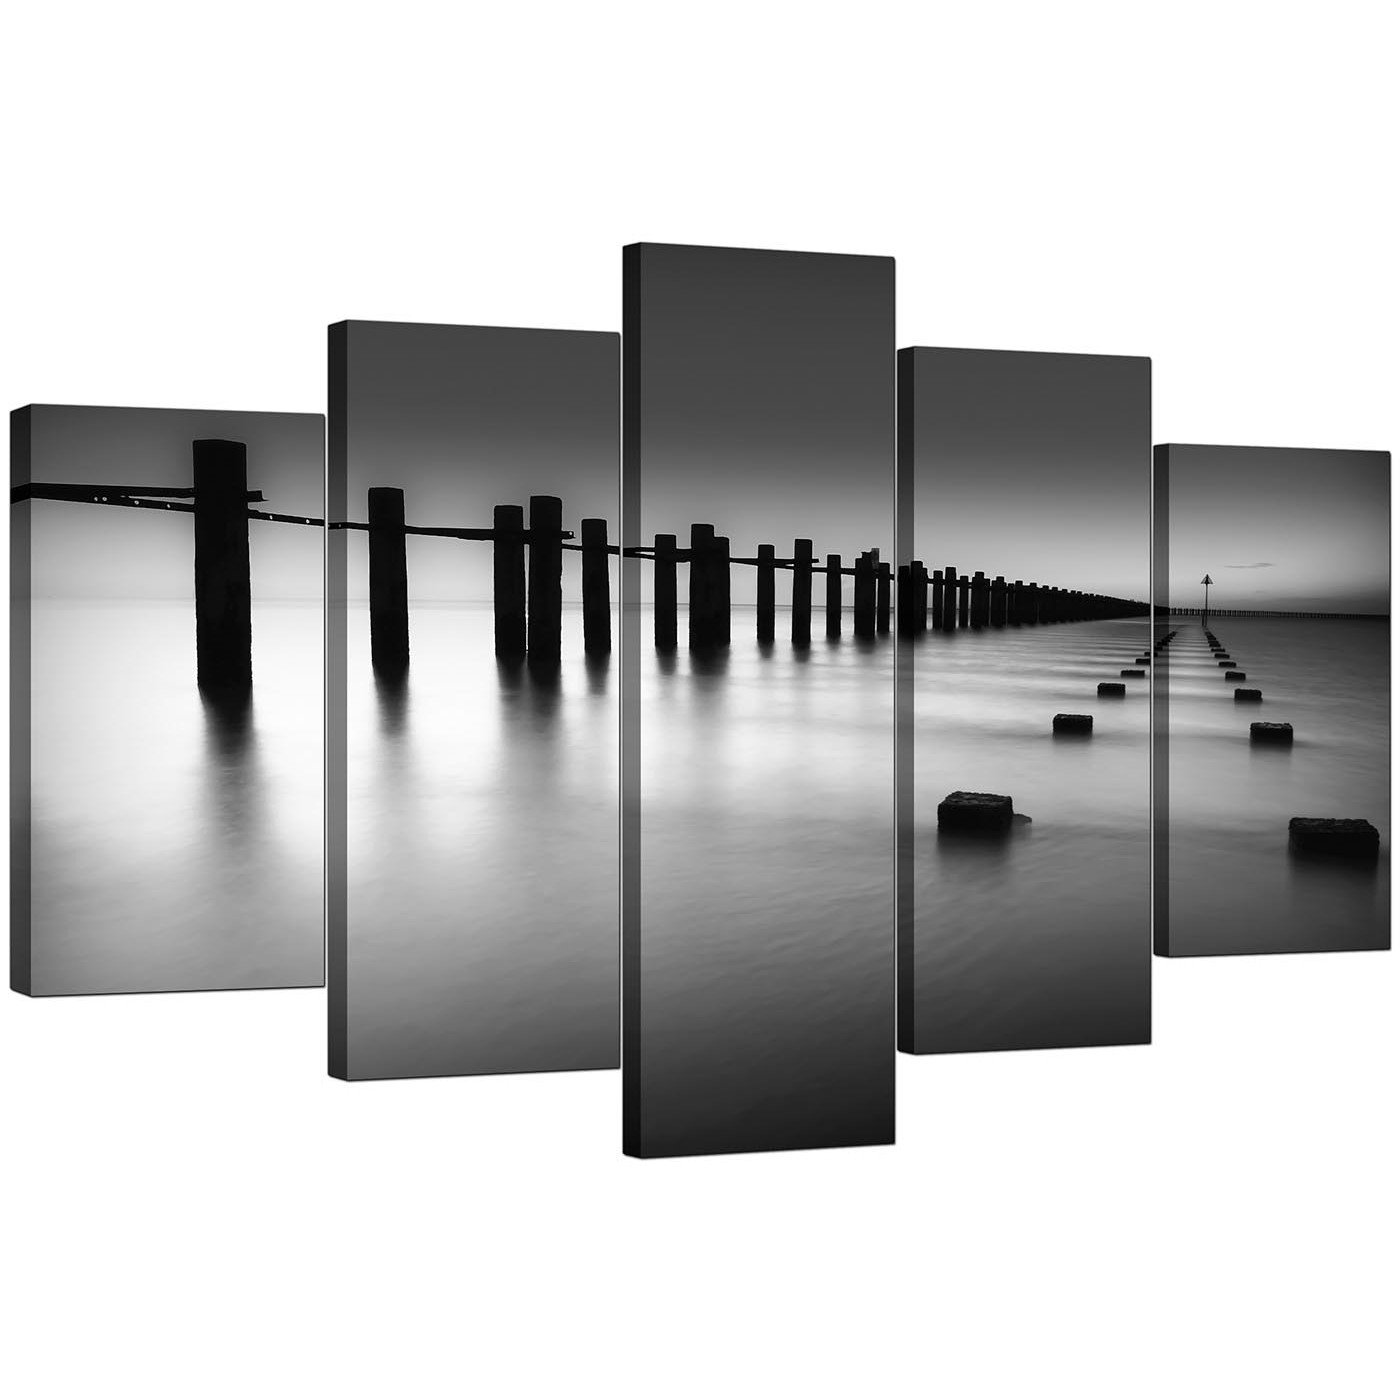 Extra Large Sea Canvas Prints 5 Piece In Black & White with regard to Black And White Canvas Wall Art (Image 8 of 20)